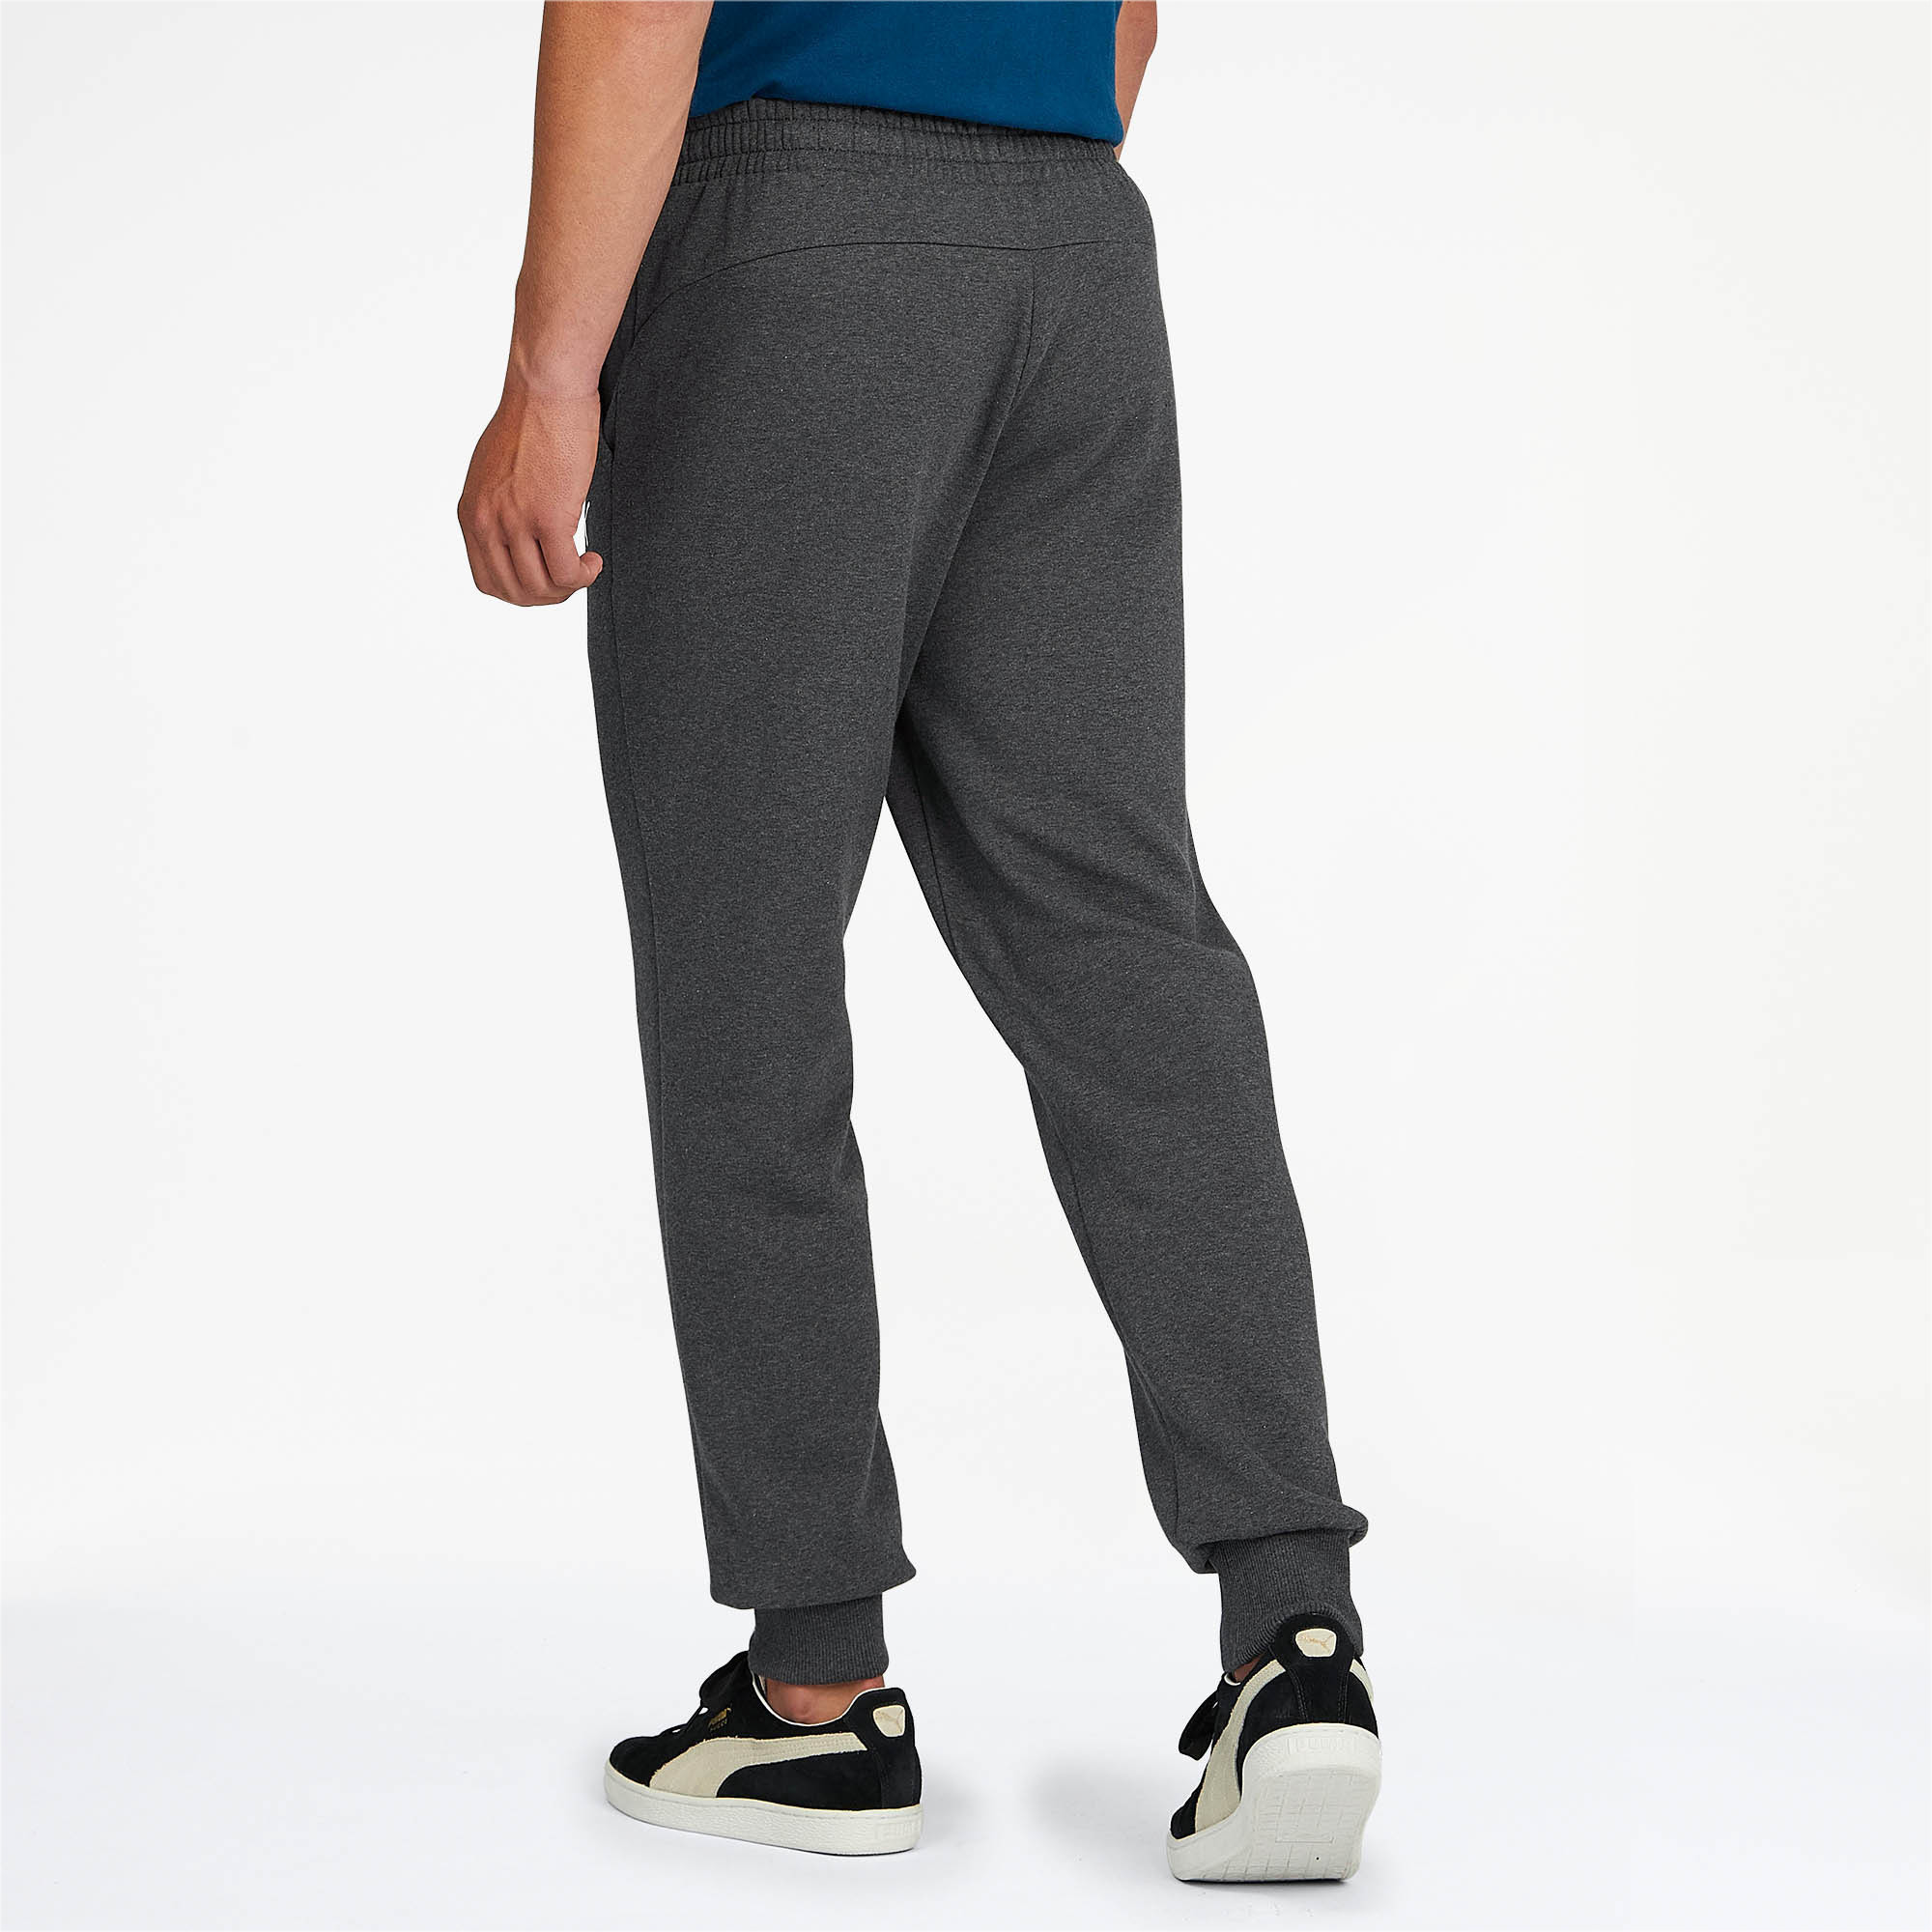 PUMA-Essentials-Men-039-s-Fleece-Knit-Pants-Men-Knitted-Pants-Basics thumbnail 17